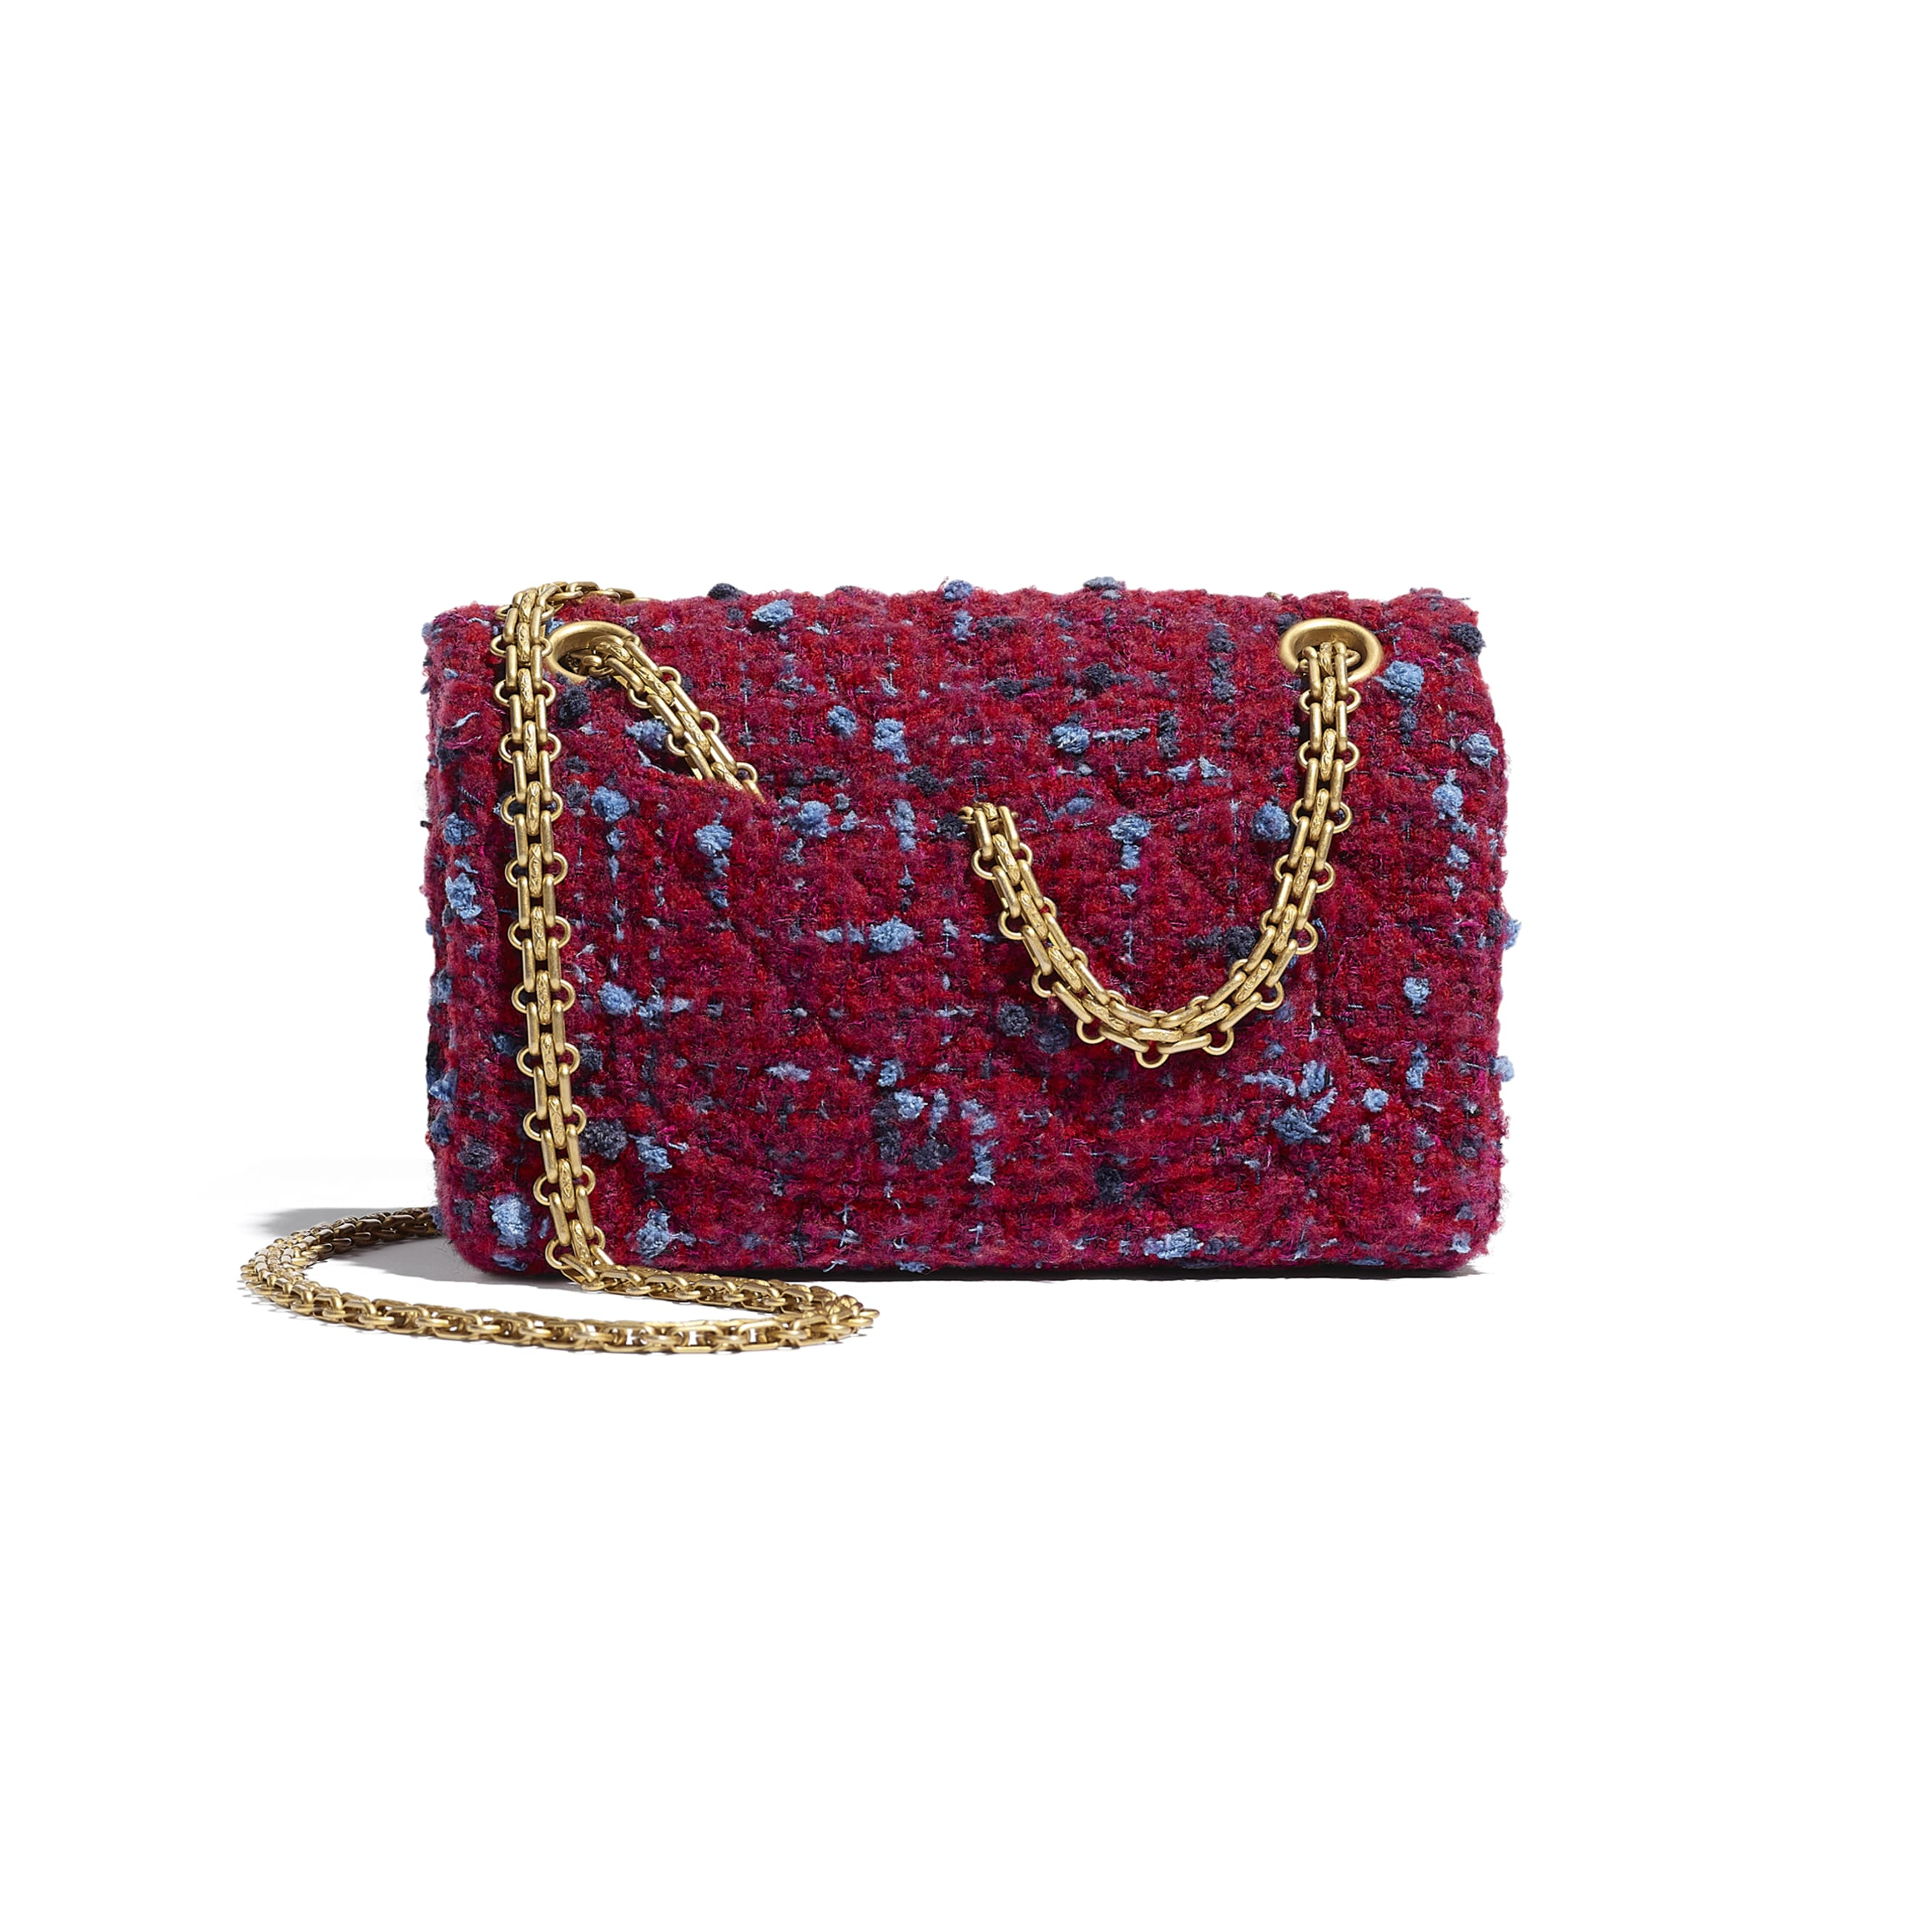 Small 2.55 Handbag - Burgundy, Blue & Grey - Tweed & Gold Metal - CHANEL - Alternative view - see standard sized version